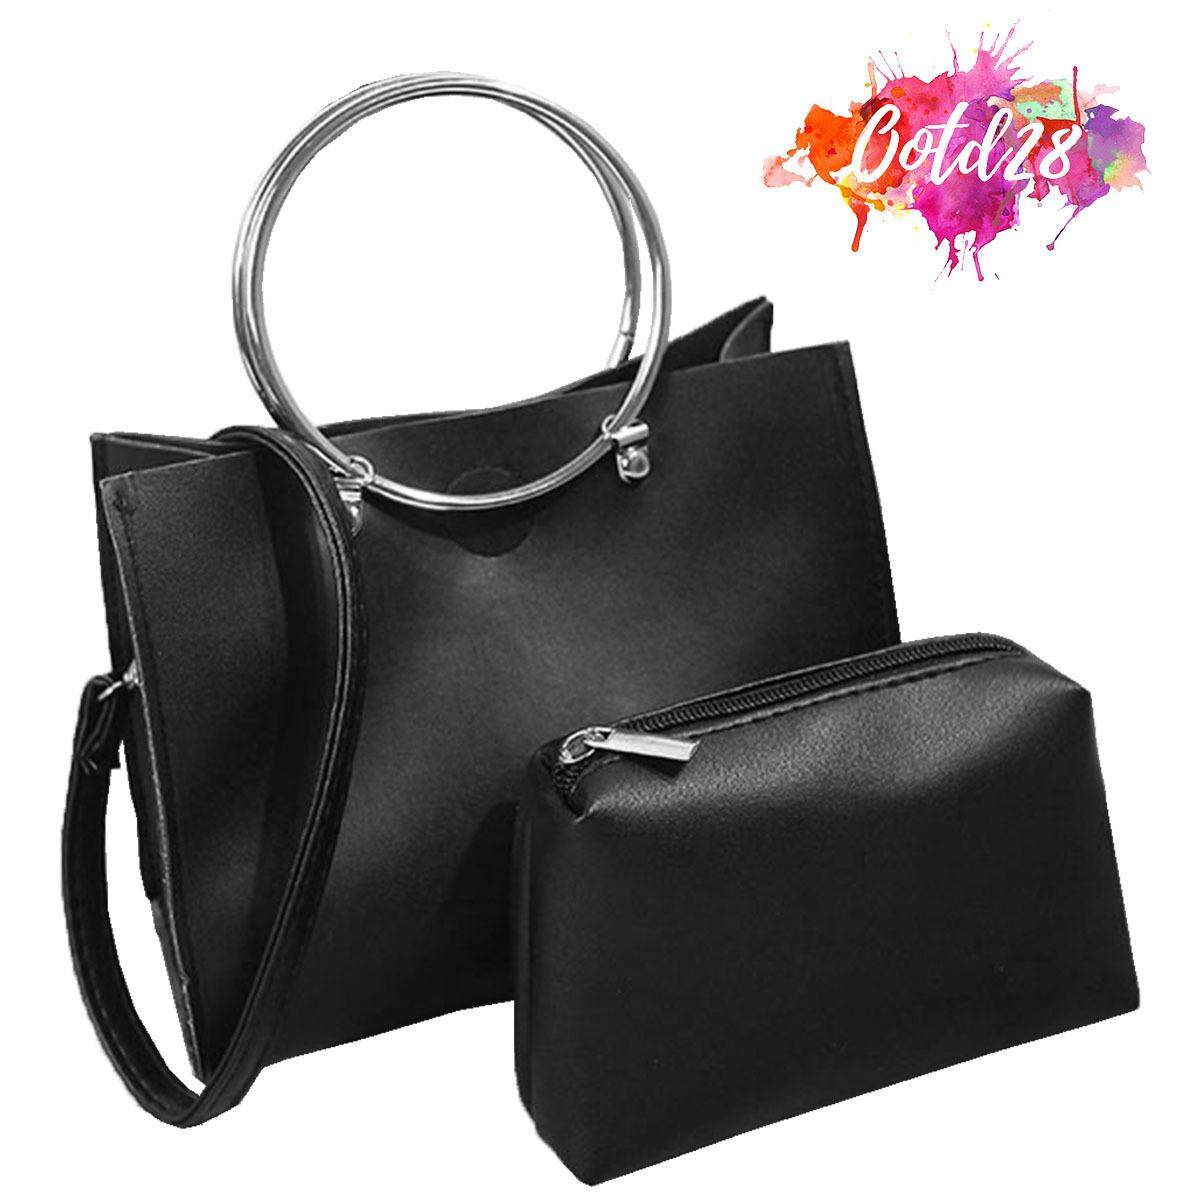 7568da28a2 OOTD28 617B Women Desginer Luxury Keychain Leather Hand Bag Black